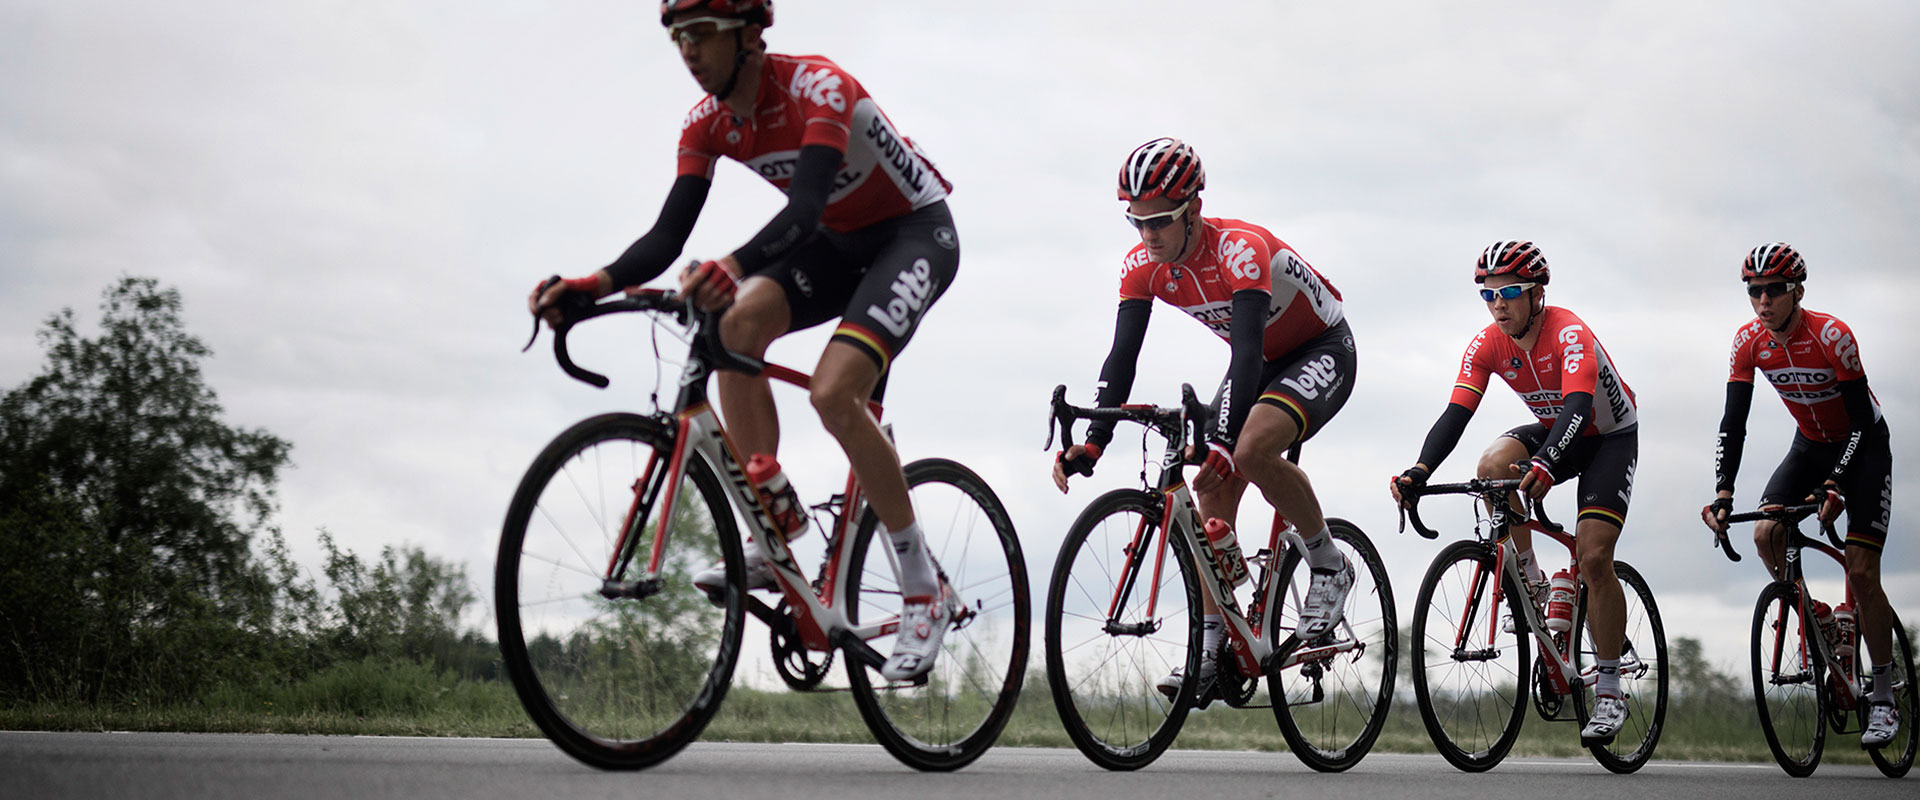 Lotto-Soudal-team